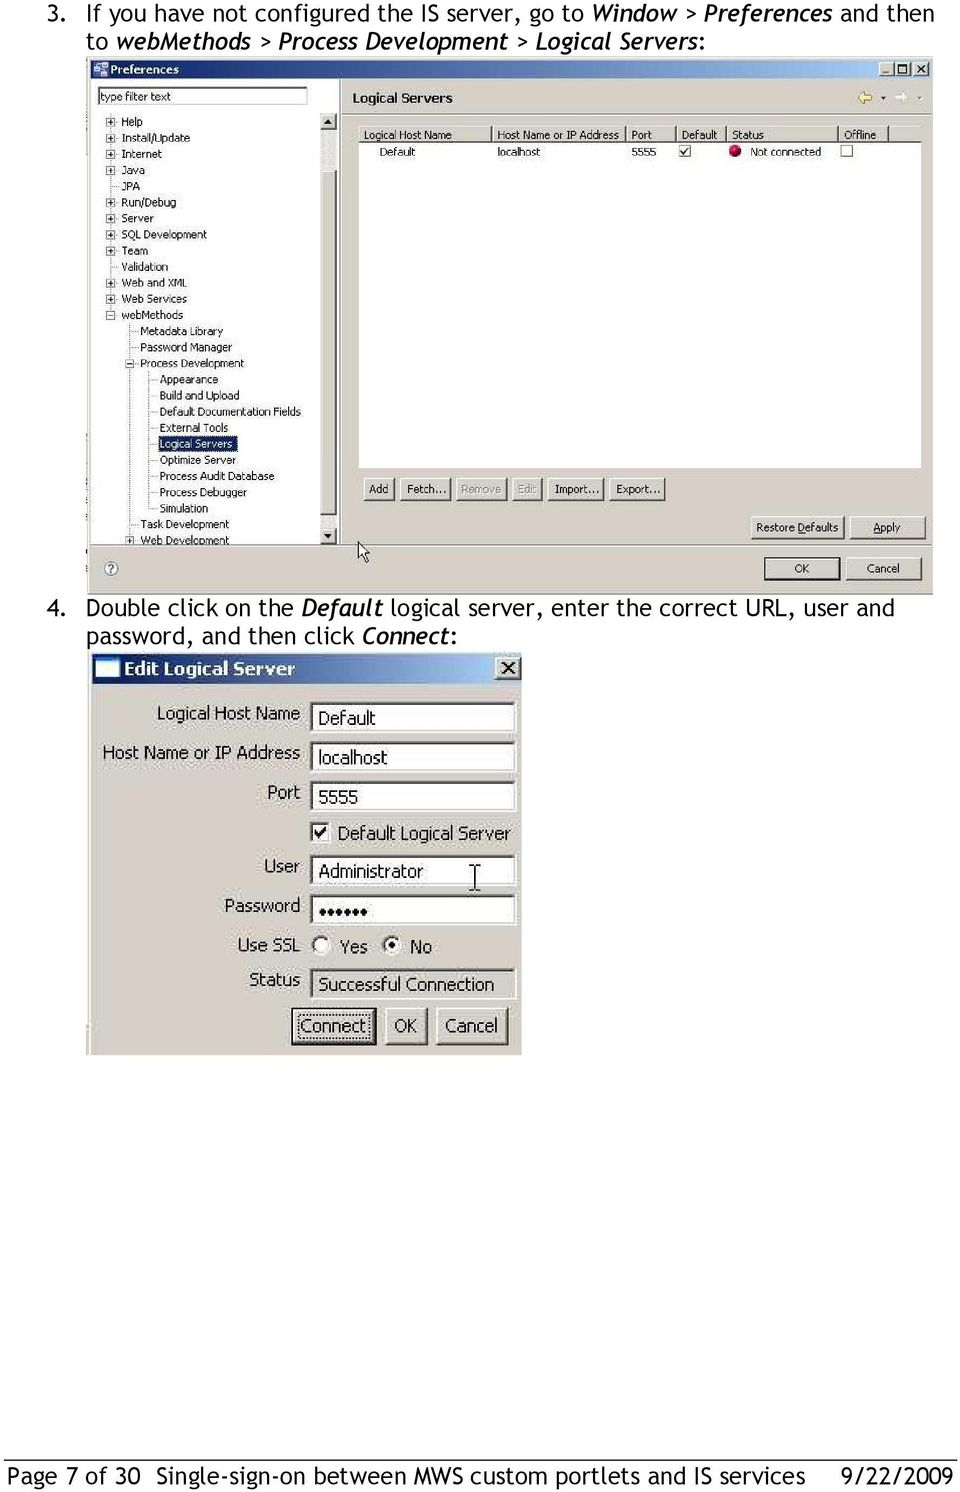 Single sign on between mws custom portlets and is services pdf double click on the default logical server enter the correct url user and m4hsunfo Choice Image